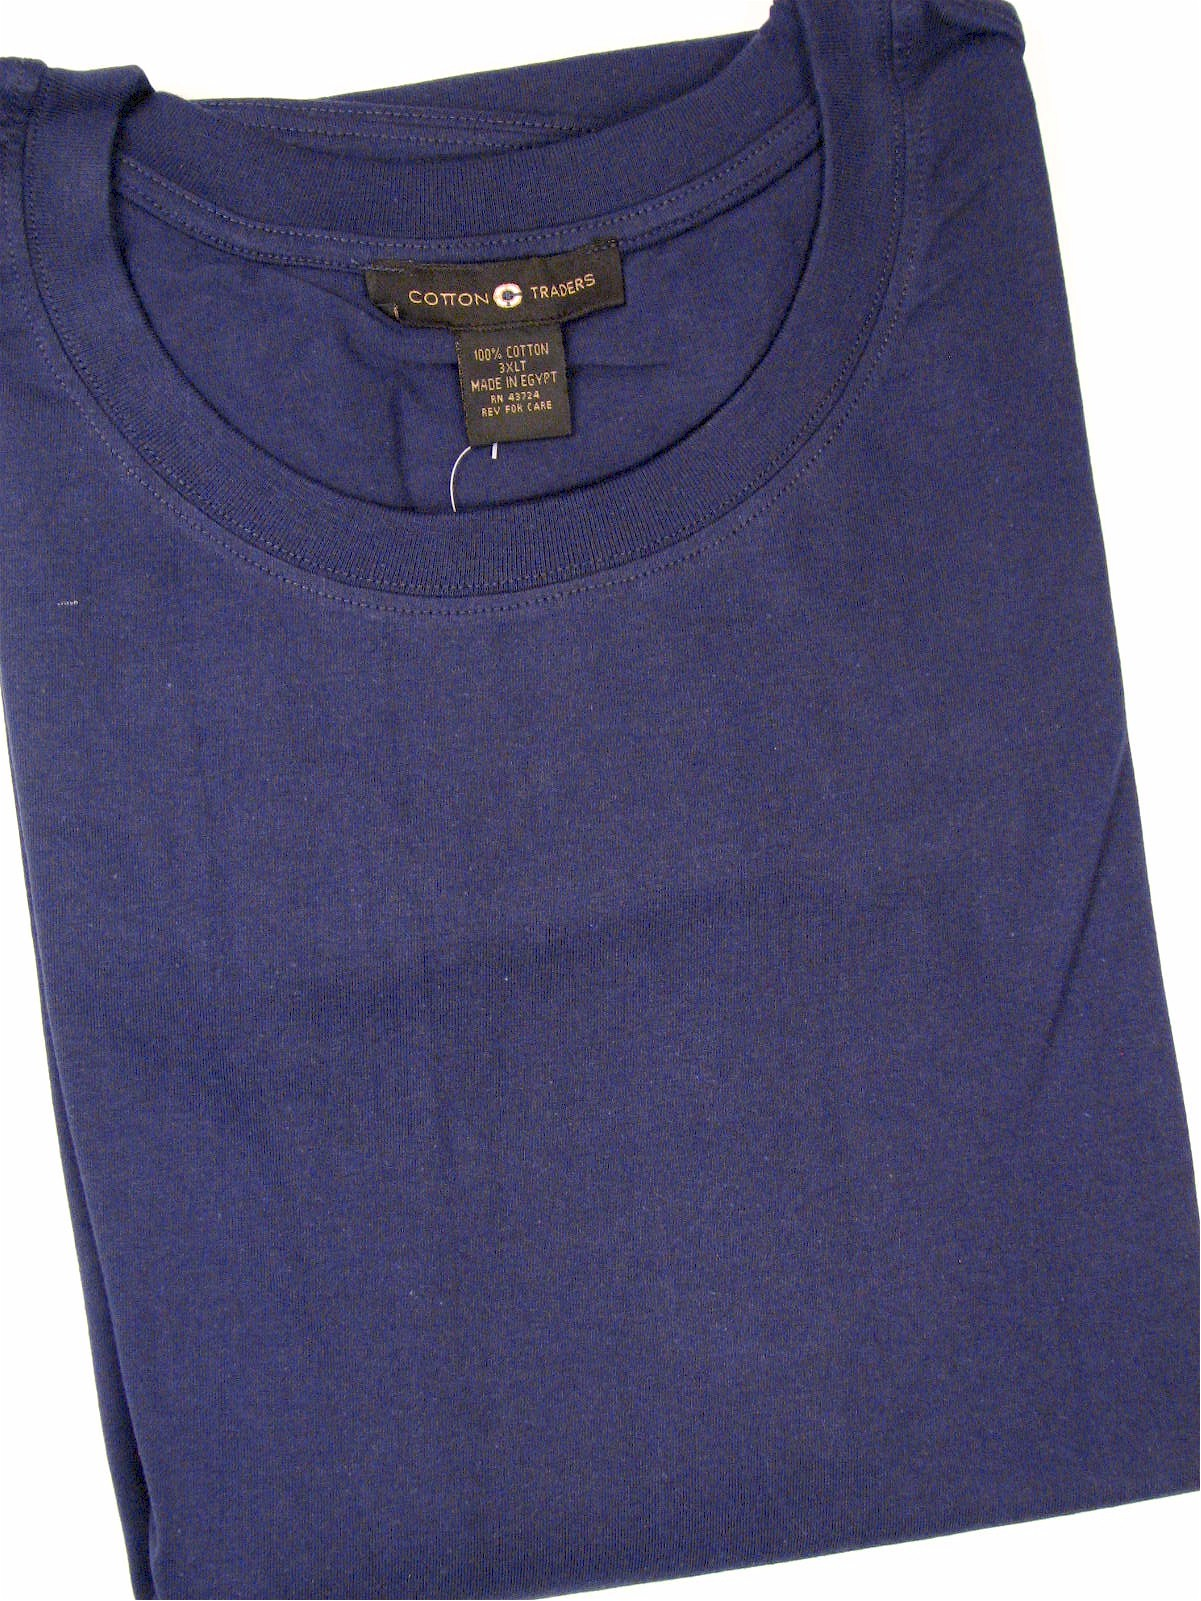 #000097. 3XL TALL. NAVY Retail $  18.00 Short Slv No Pocket by CTTON TRADERS. NON-POCKET TEE Whs A:  7